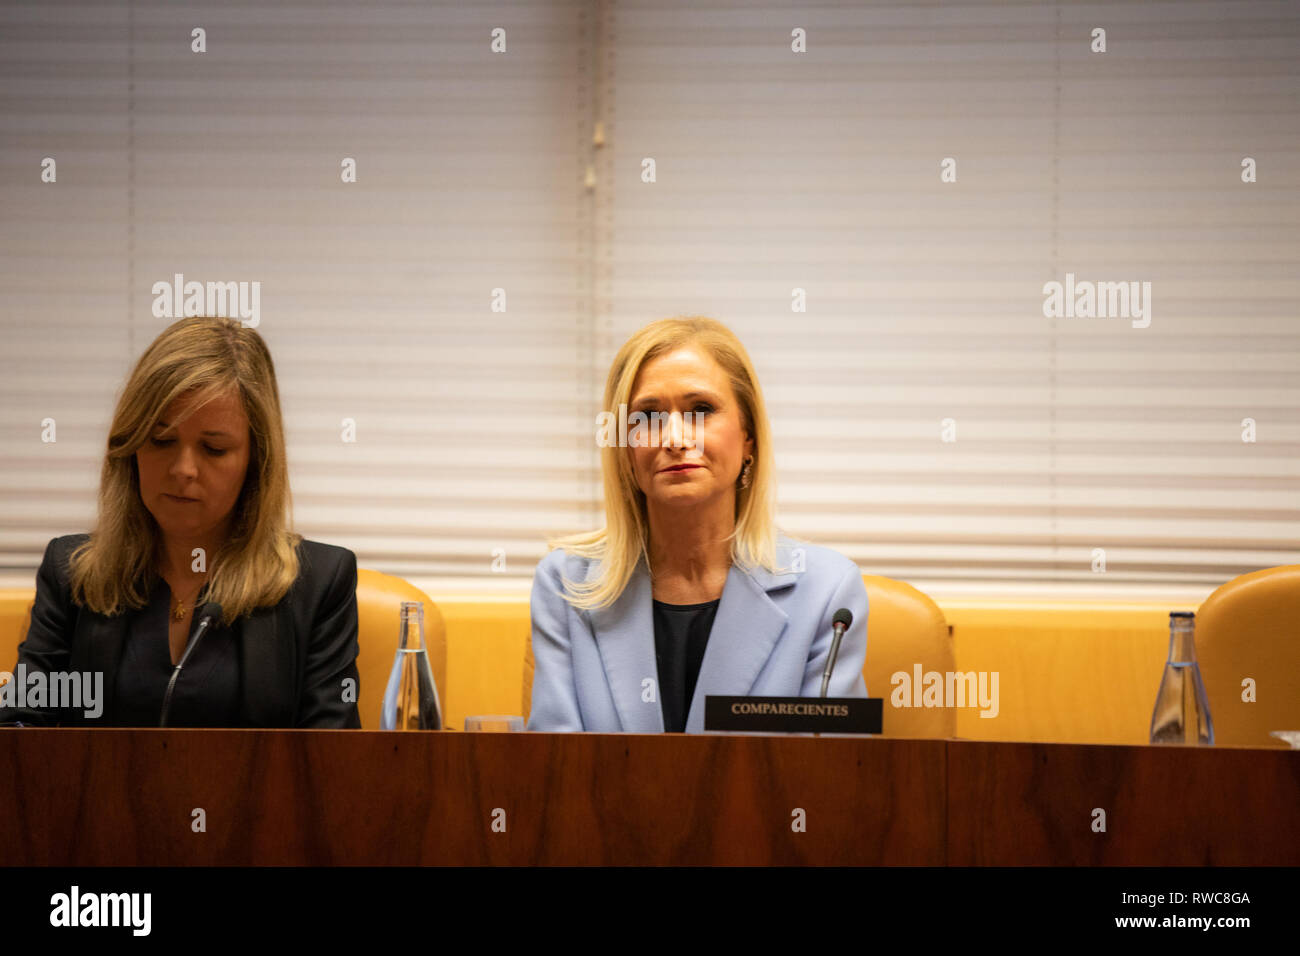 Madrid, Spain. 06th Mar, 2019. The former president of the Community of Madrid Cristina Cifuentes has attended this Wednesday in the research commission of universities of the Assembly of Madrid to appear in relation to the case Master, which is investigated for alleged crime of falsification of documents. Credit: Jesús Hellin/Alamy Live News - Stock Image